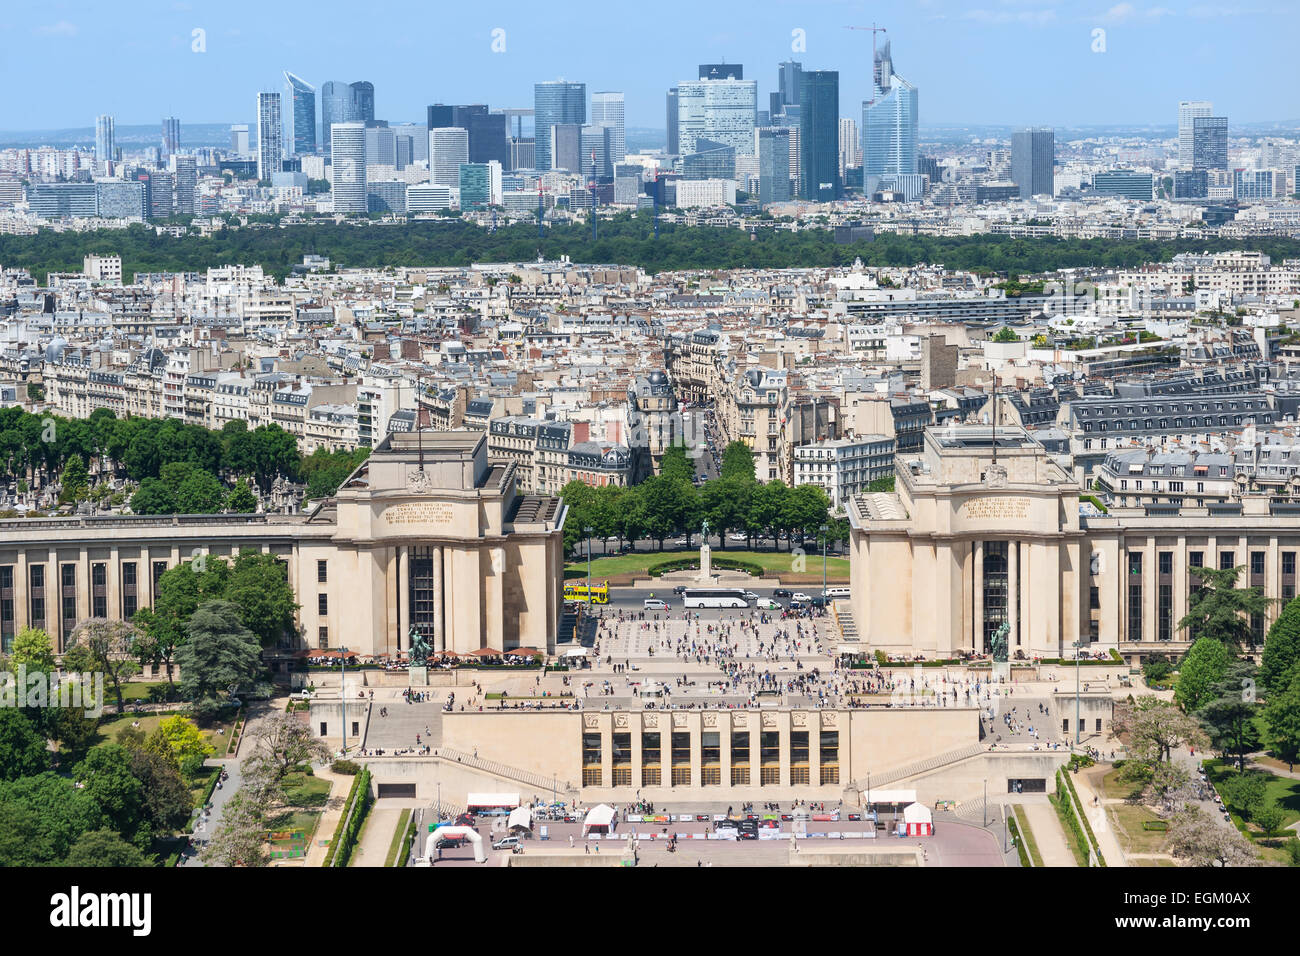 View of the Place du Trocadero from the Eiffel Tower. Paris , France - Stock Image